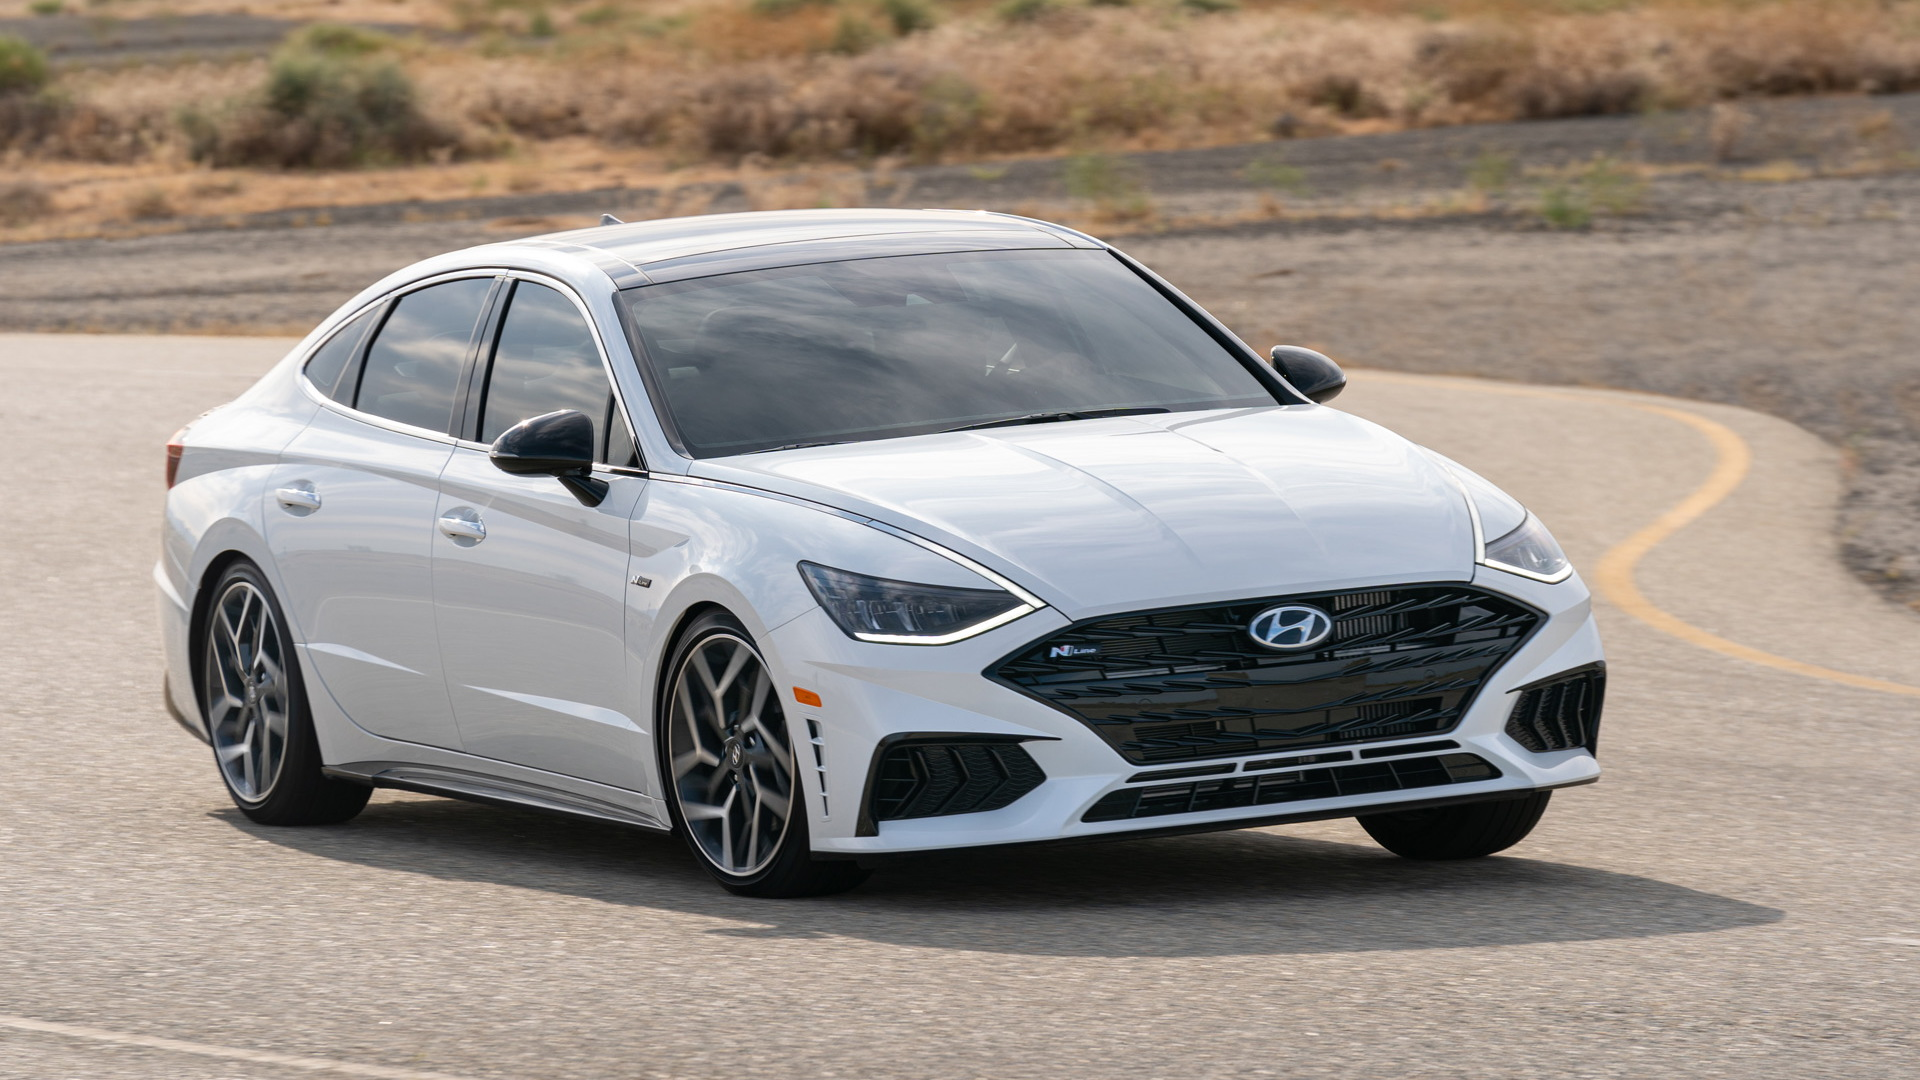 Hyundai Sonata N-Line revealed ahead of big unveiling event